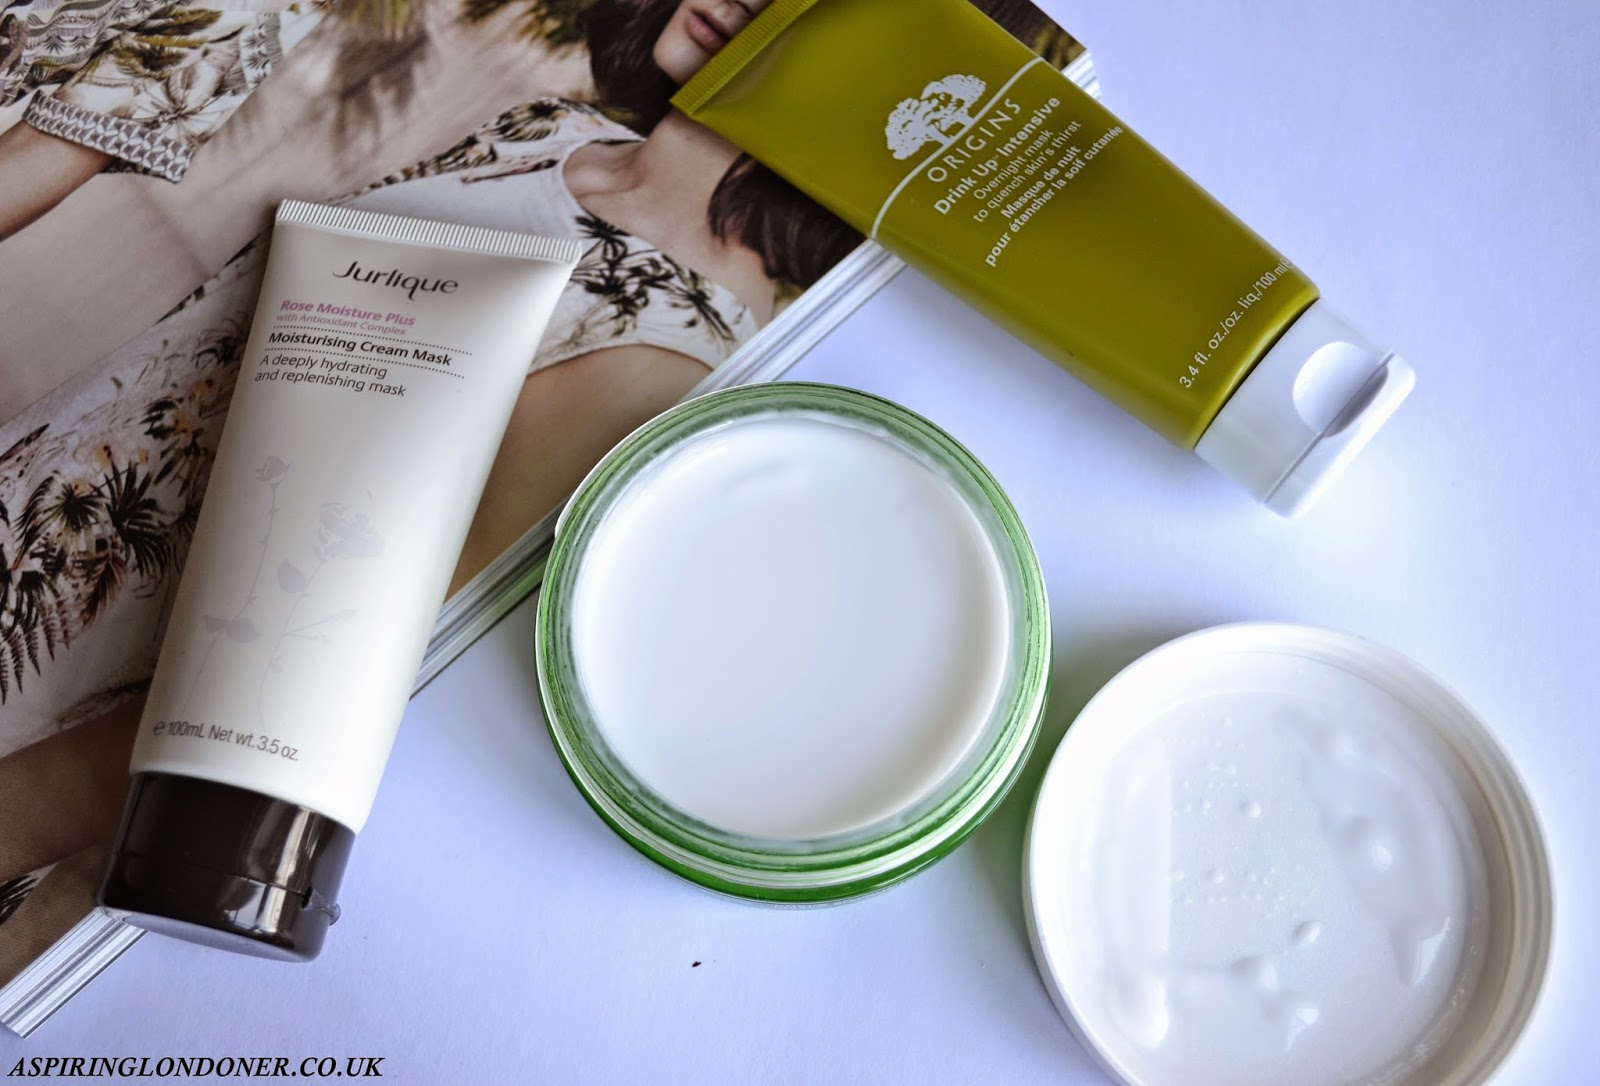 Luxury Hydrating Face Masks Review ft Origins, Jurlique, The Body Shop - Aspiring Londoner